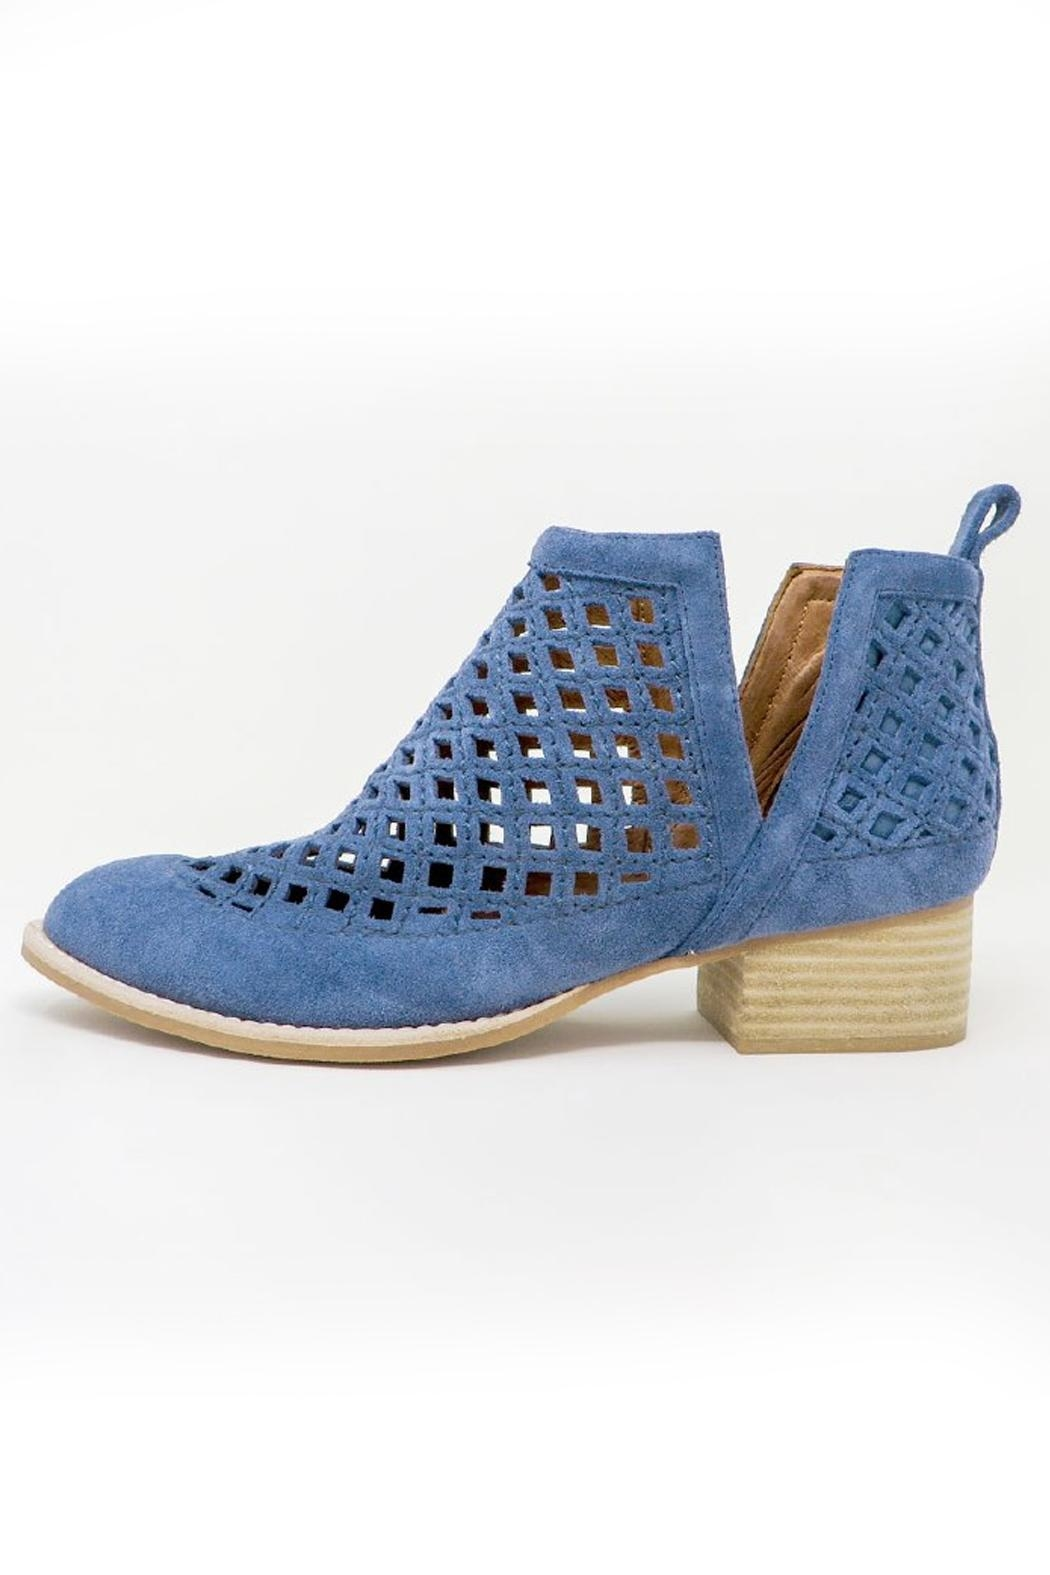 Jeffrey Campbell Blue Perforated Booties - Main Image